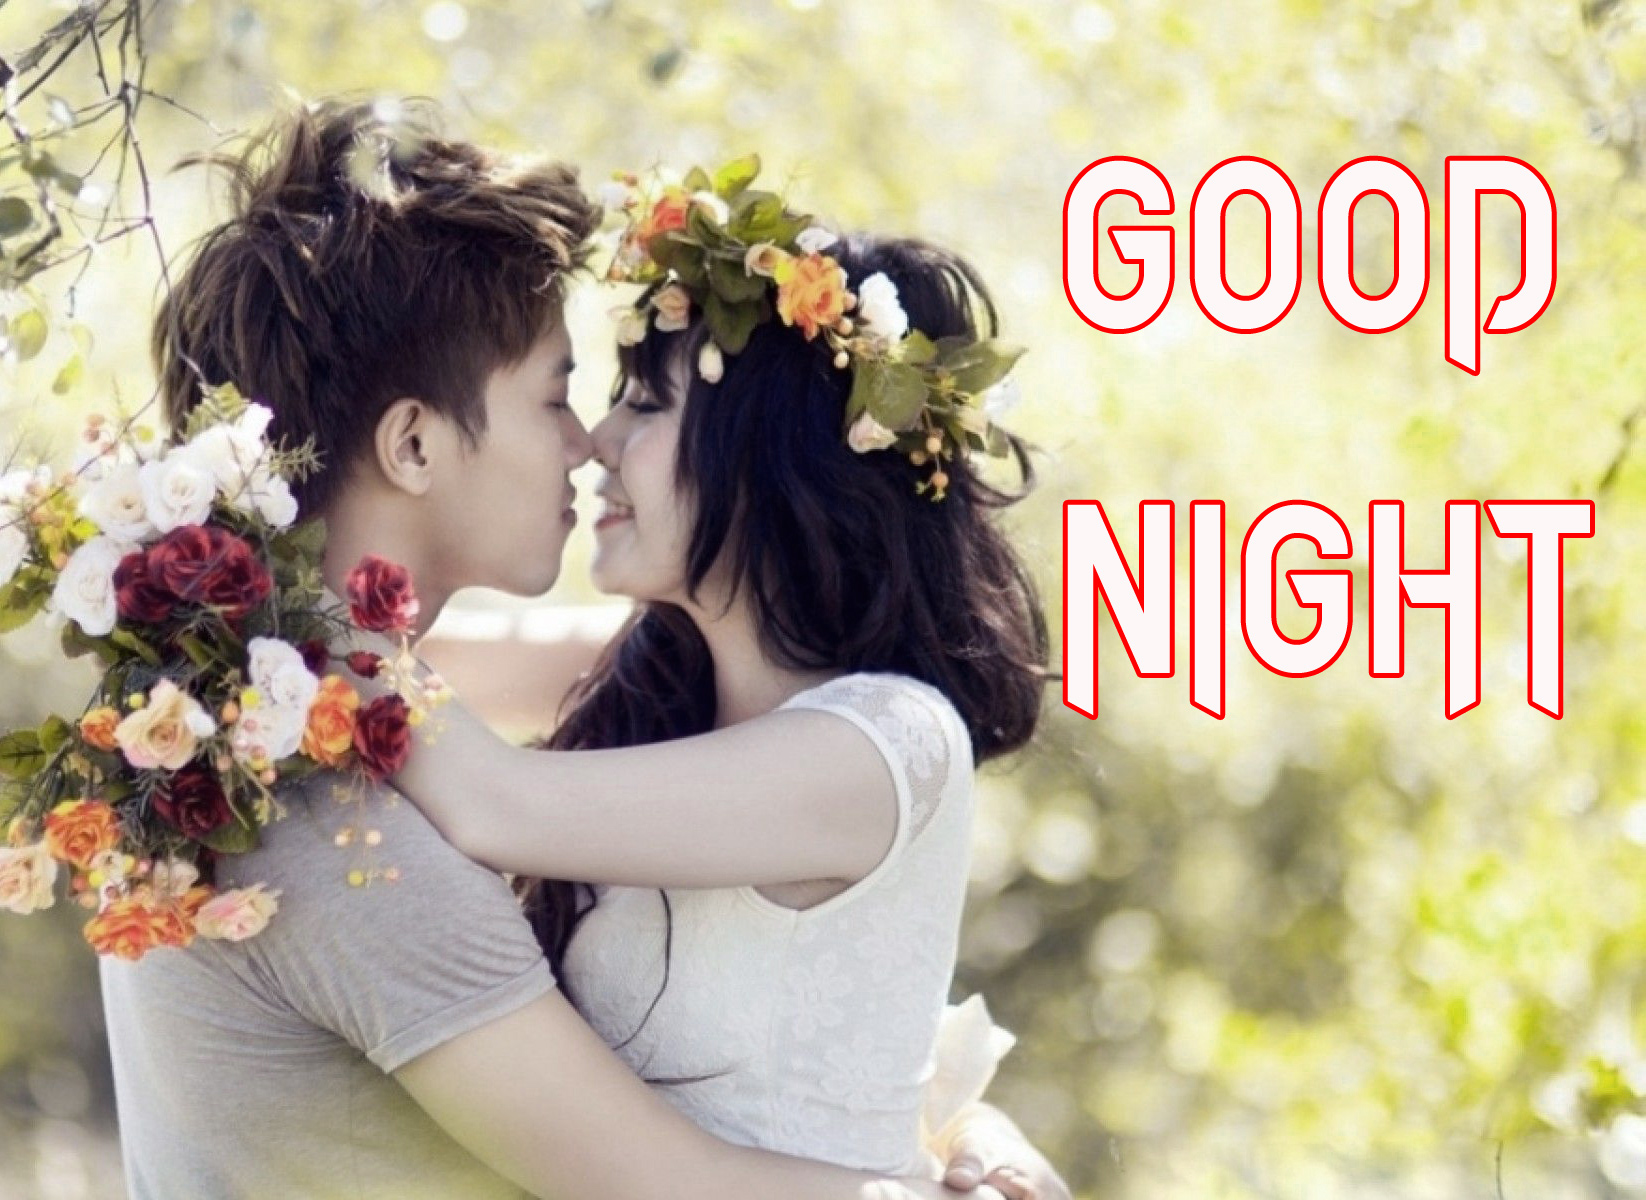 CUTE LOVE  GOOD NIGHT  IMAGES WALLPAPER PHOTO FREE HD